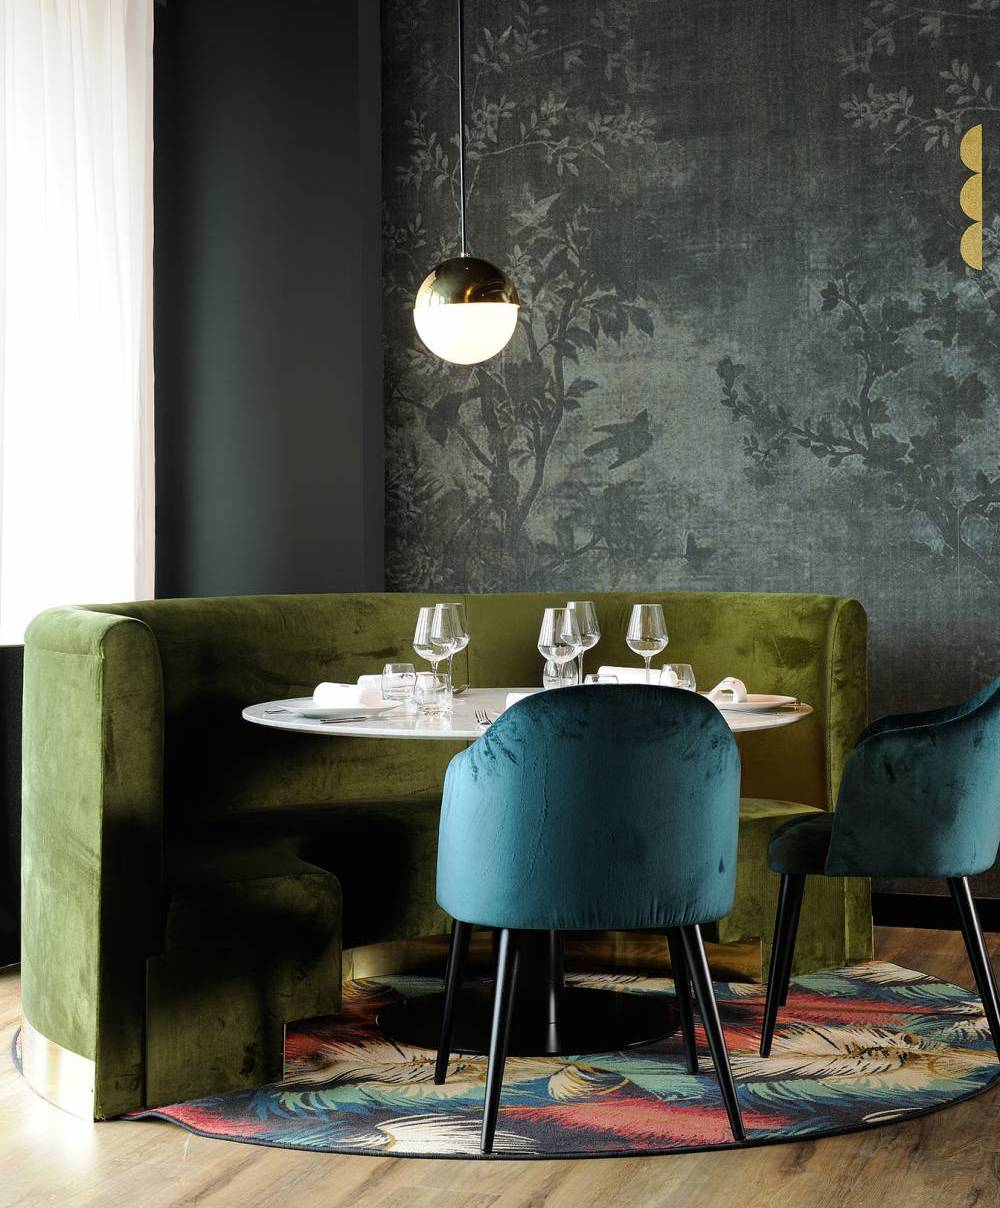 La Forêt Noire designed by Claude Cartier || Olive green colour inspiration by First Sense